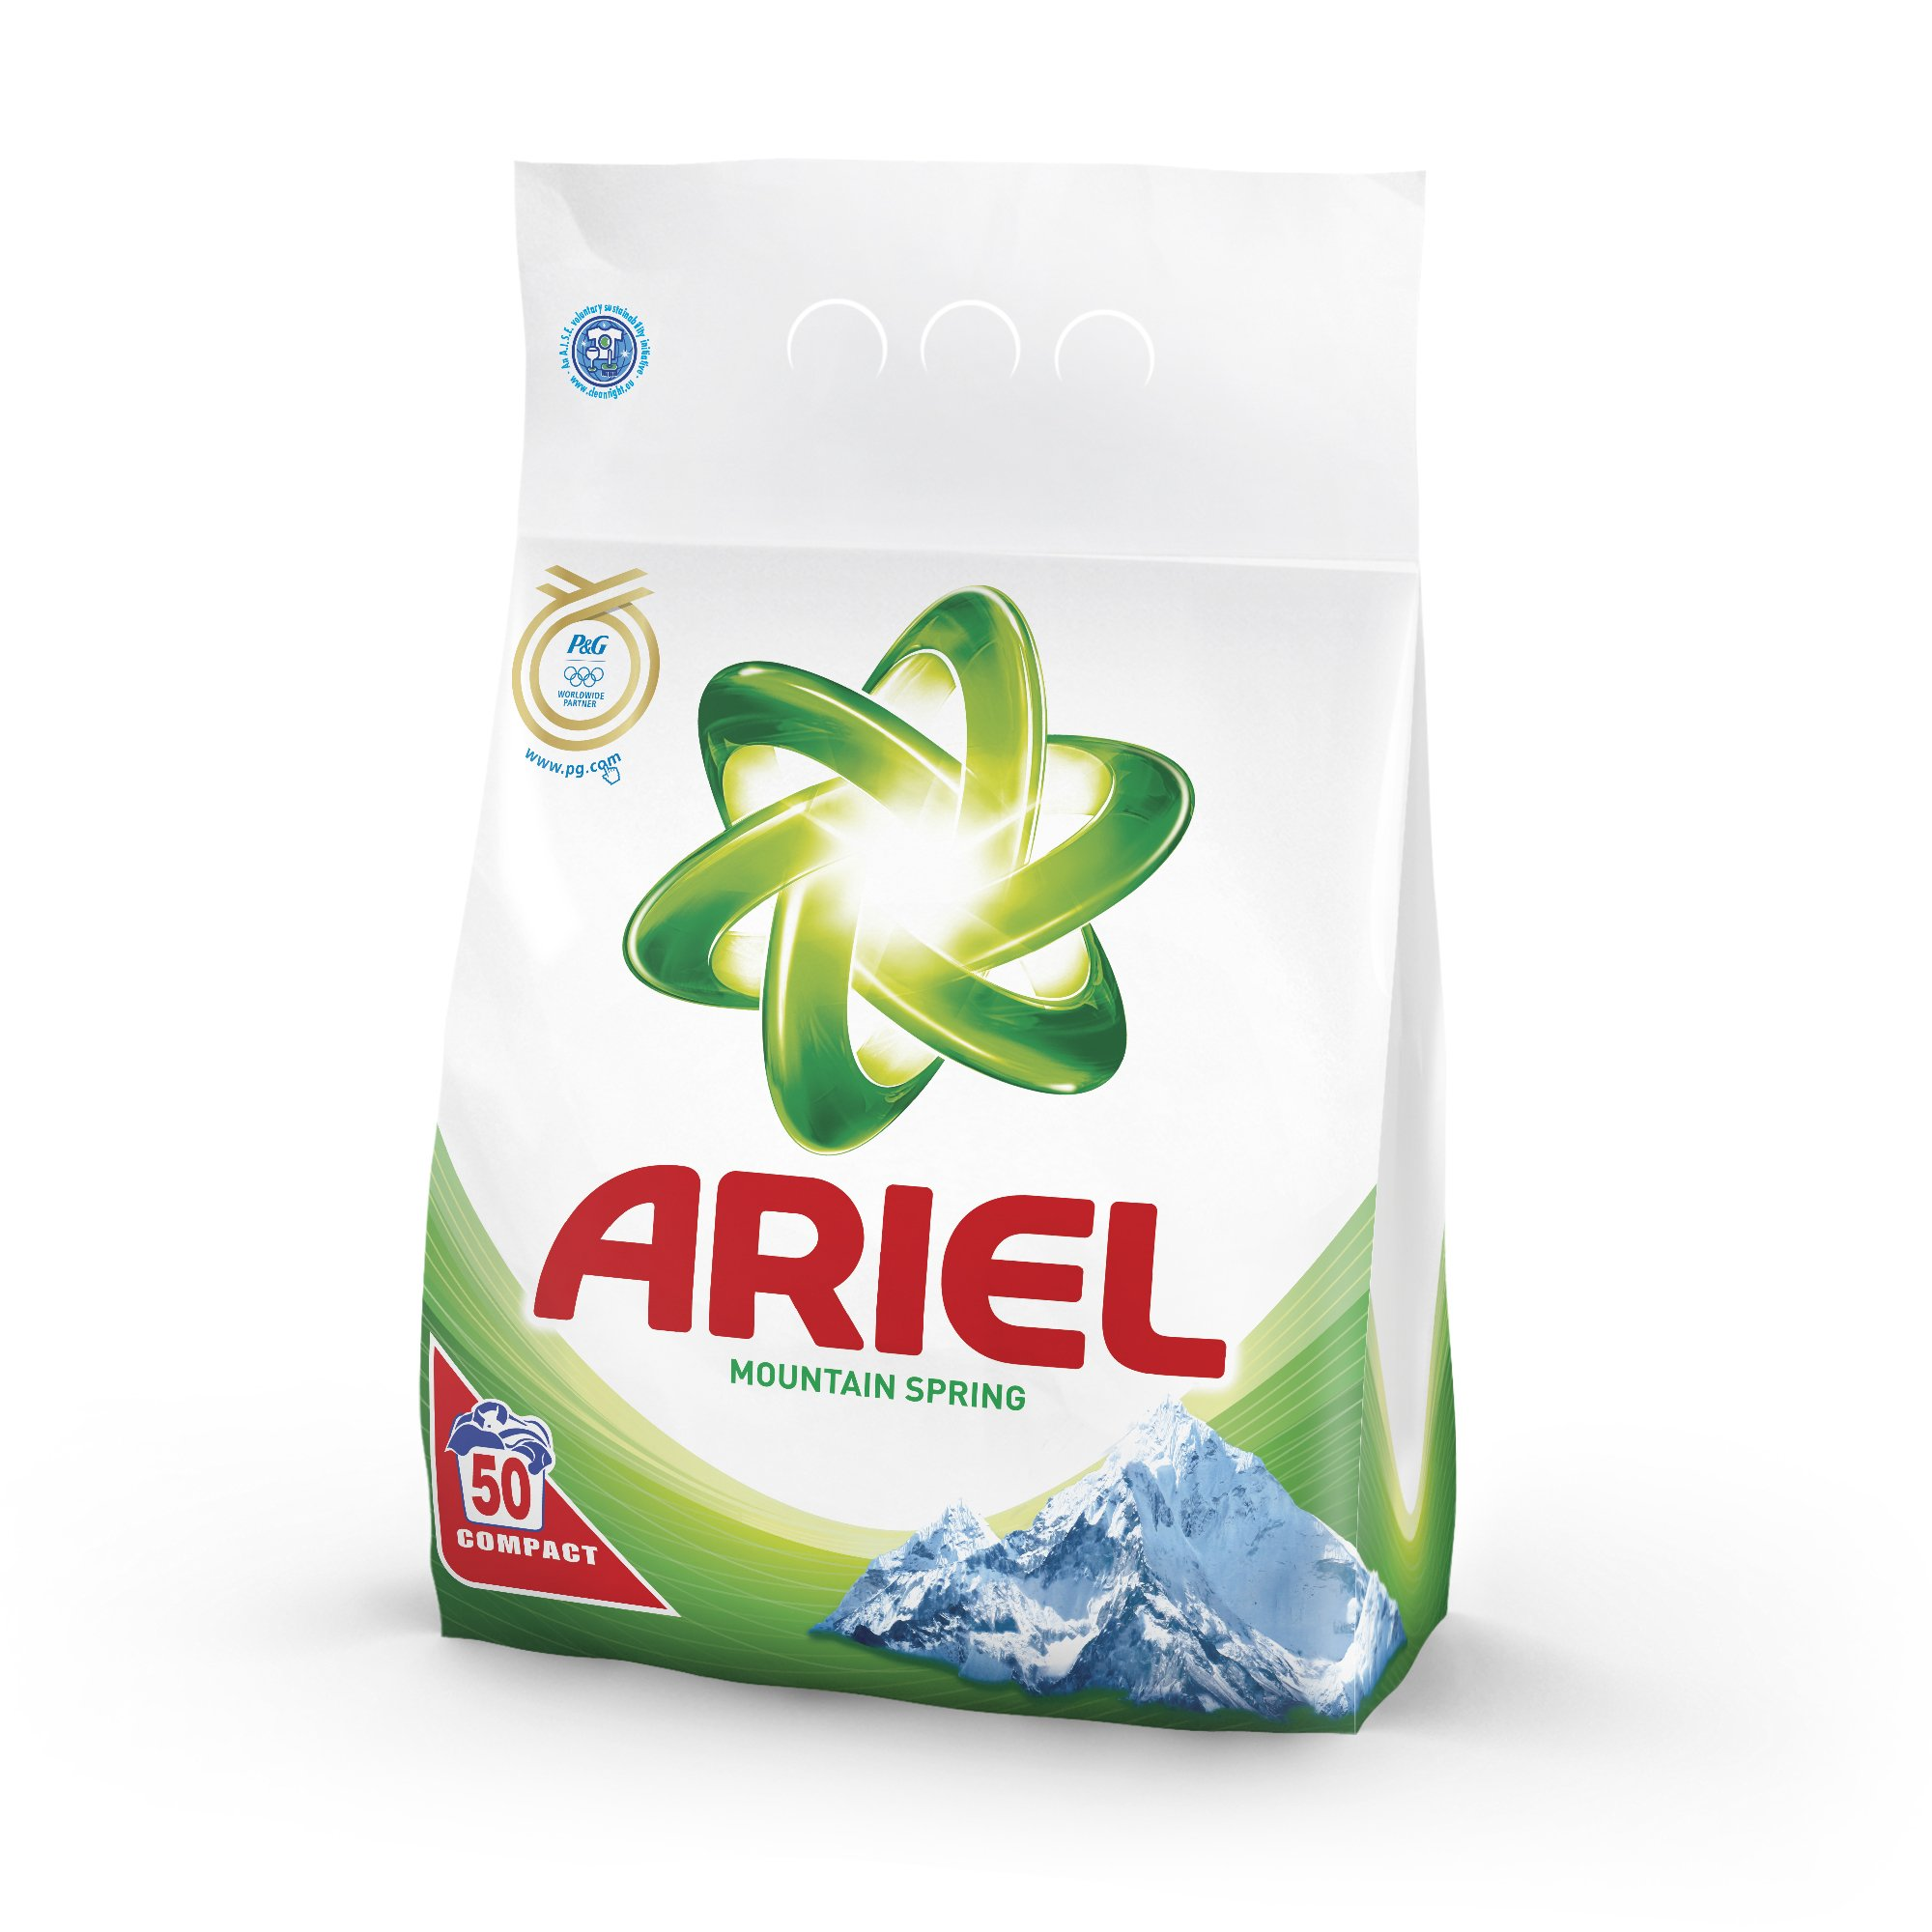 Ariel Compact H.E. Laundry Detergent Powder, Mountain Spring [Authentic European] - 150 Wash Loads (3 x 3.5kg Compact)